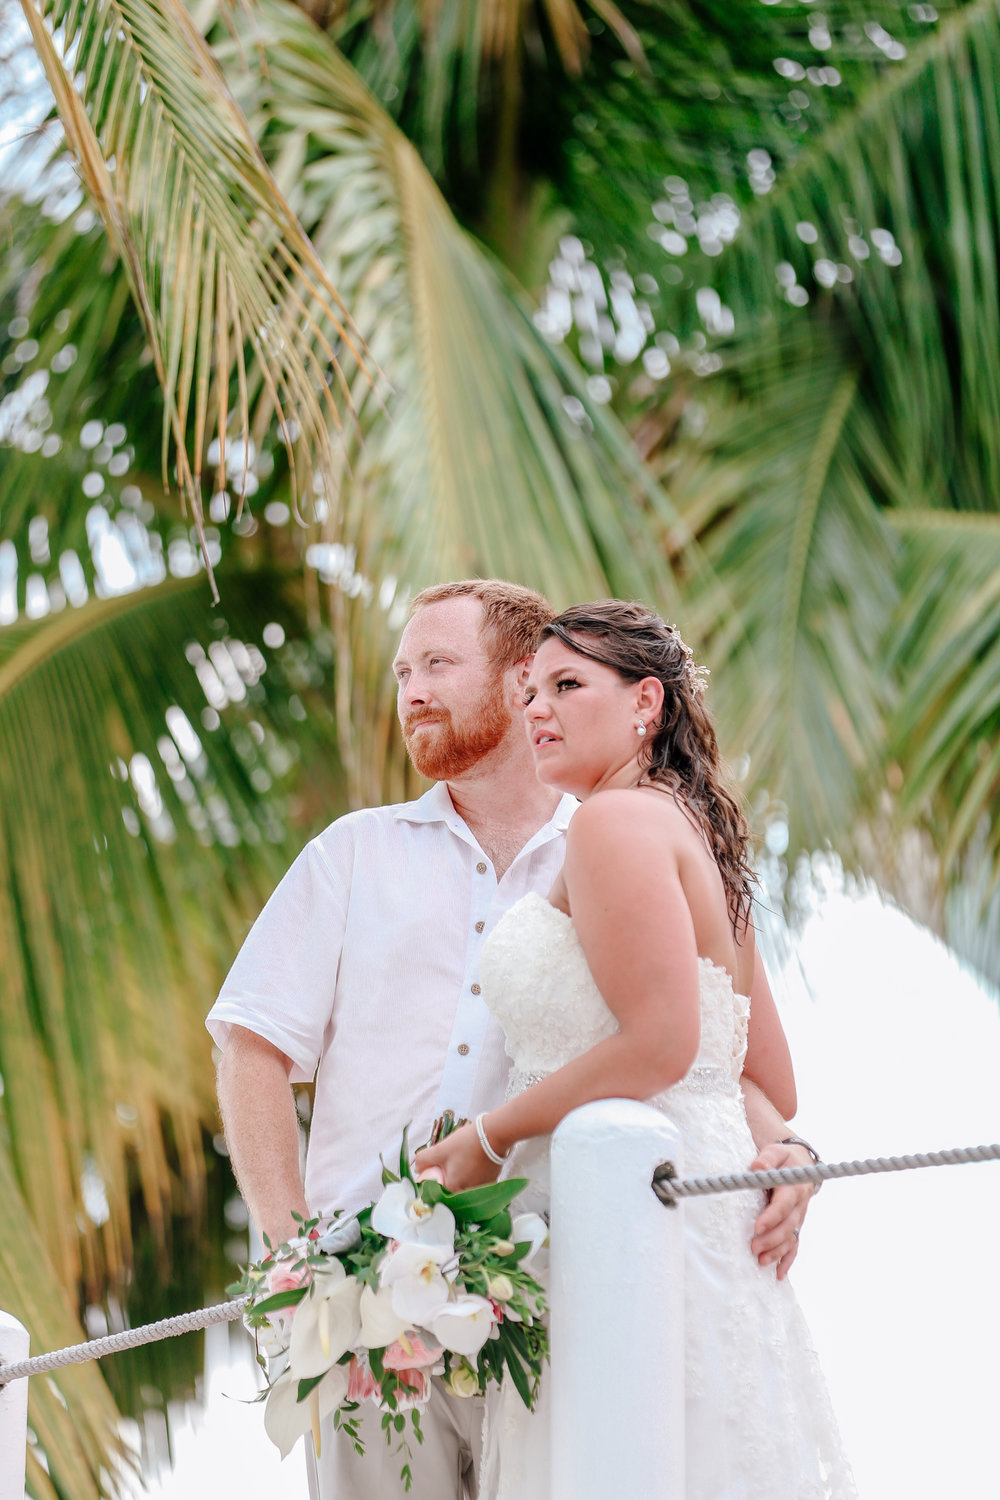 Tiffany and Ryan - Puerto Vallarta Wedding Photographer - 94.jpg